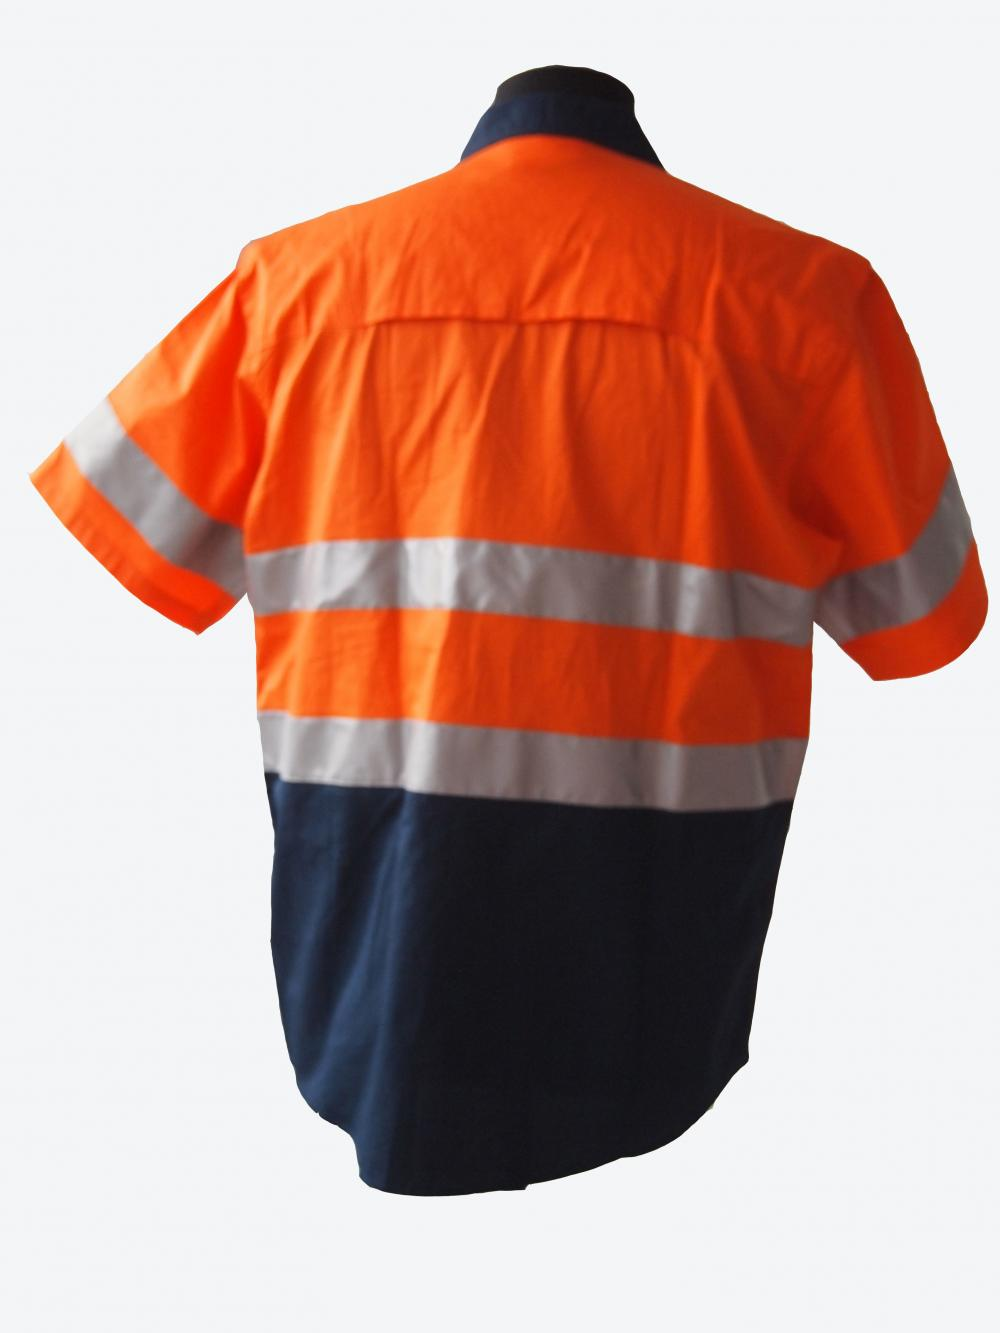 19 Reflective Work Shirts 8